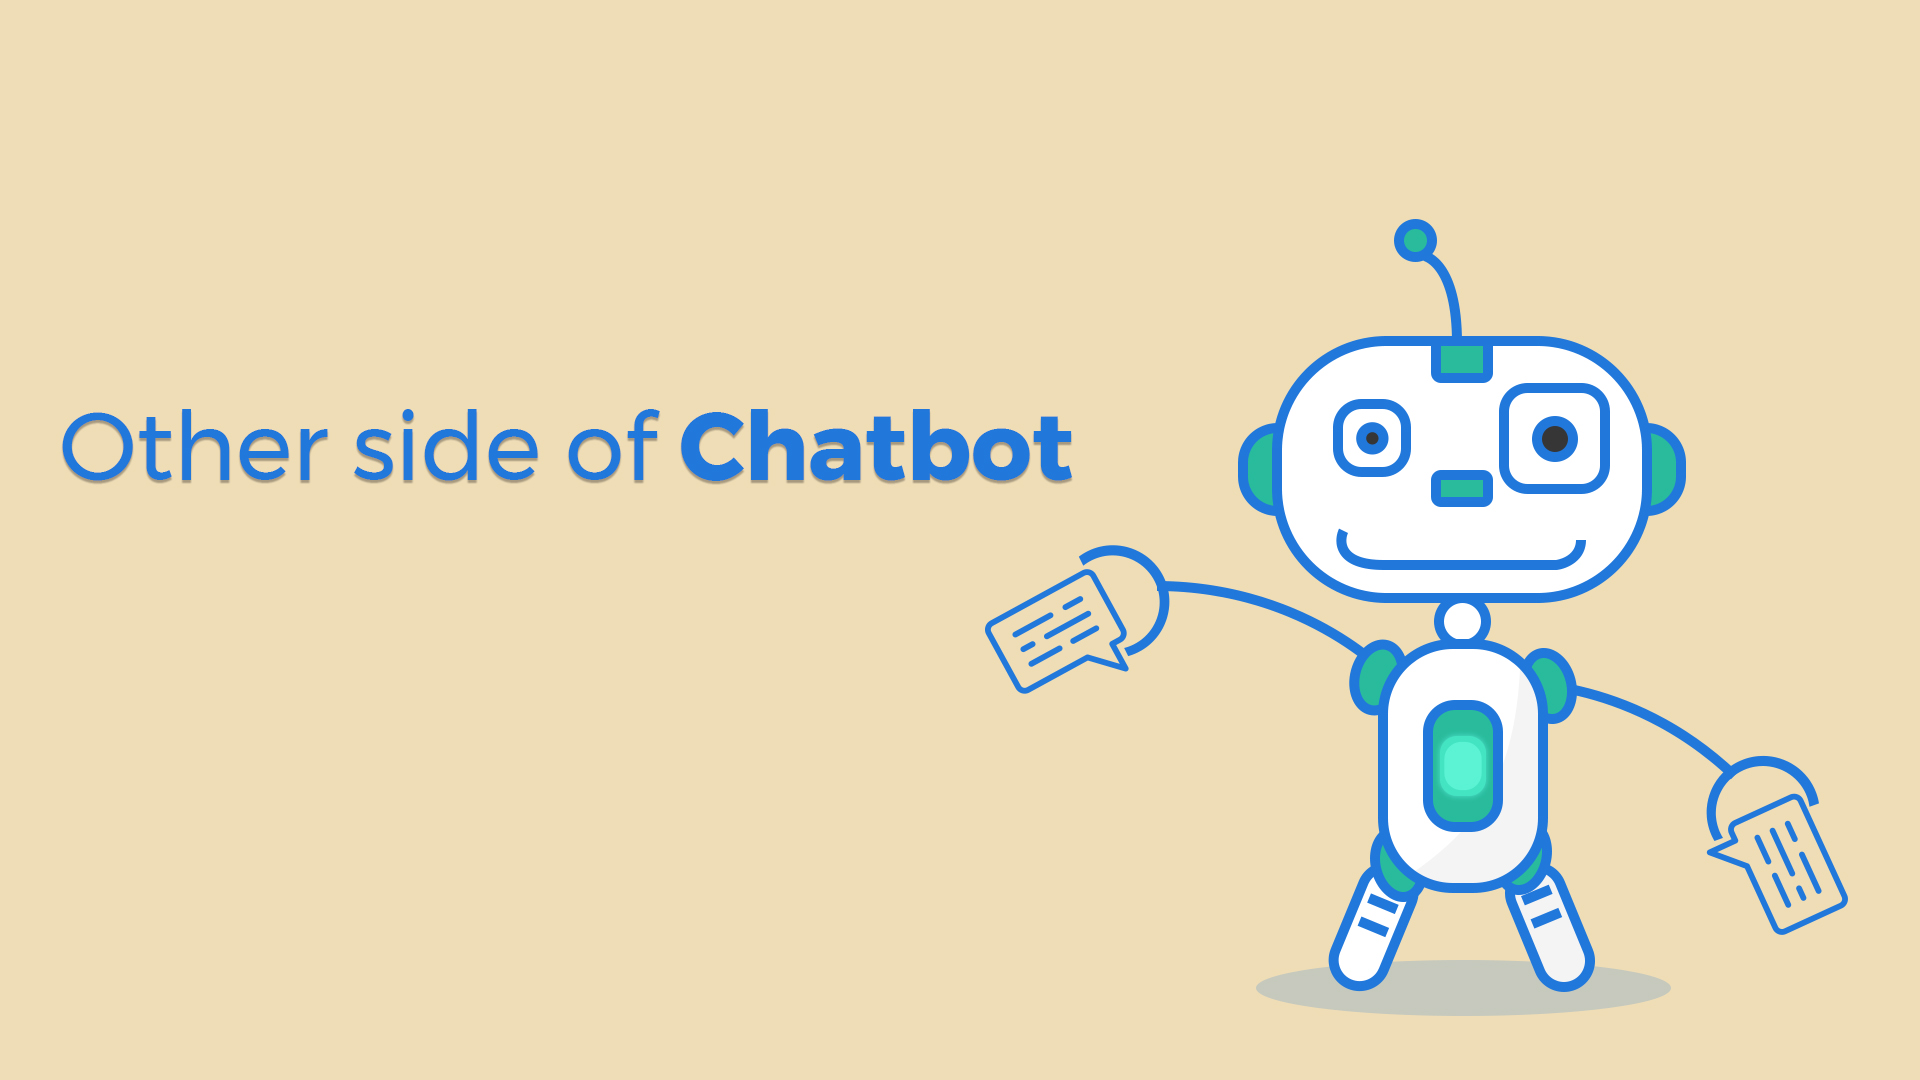 List of chatbot risks and disadvantages